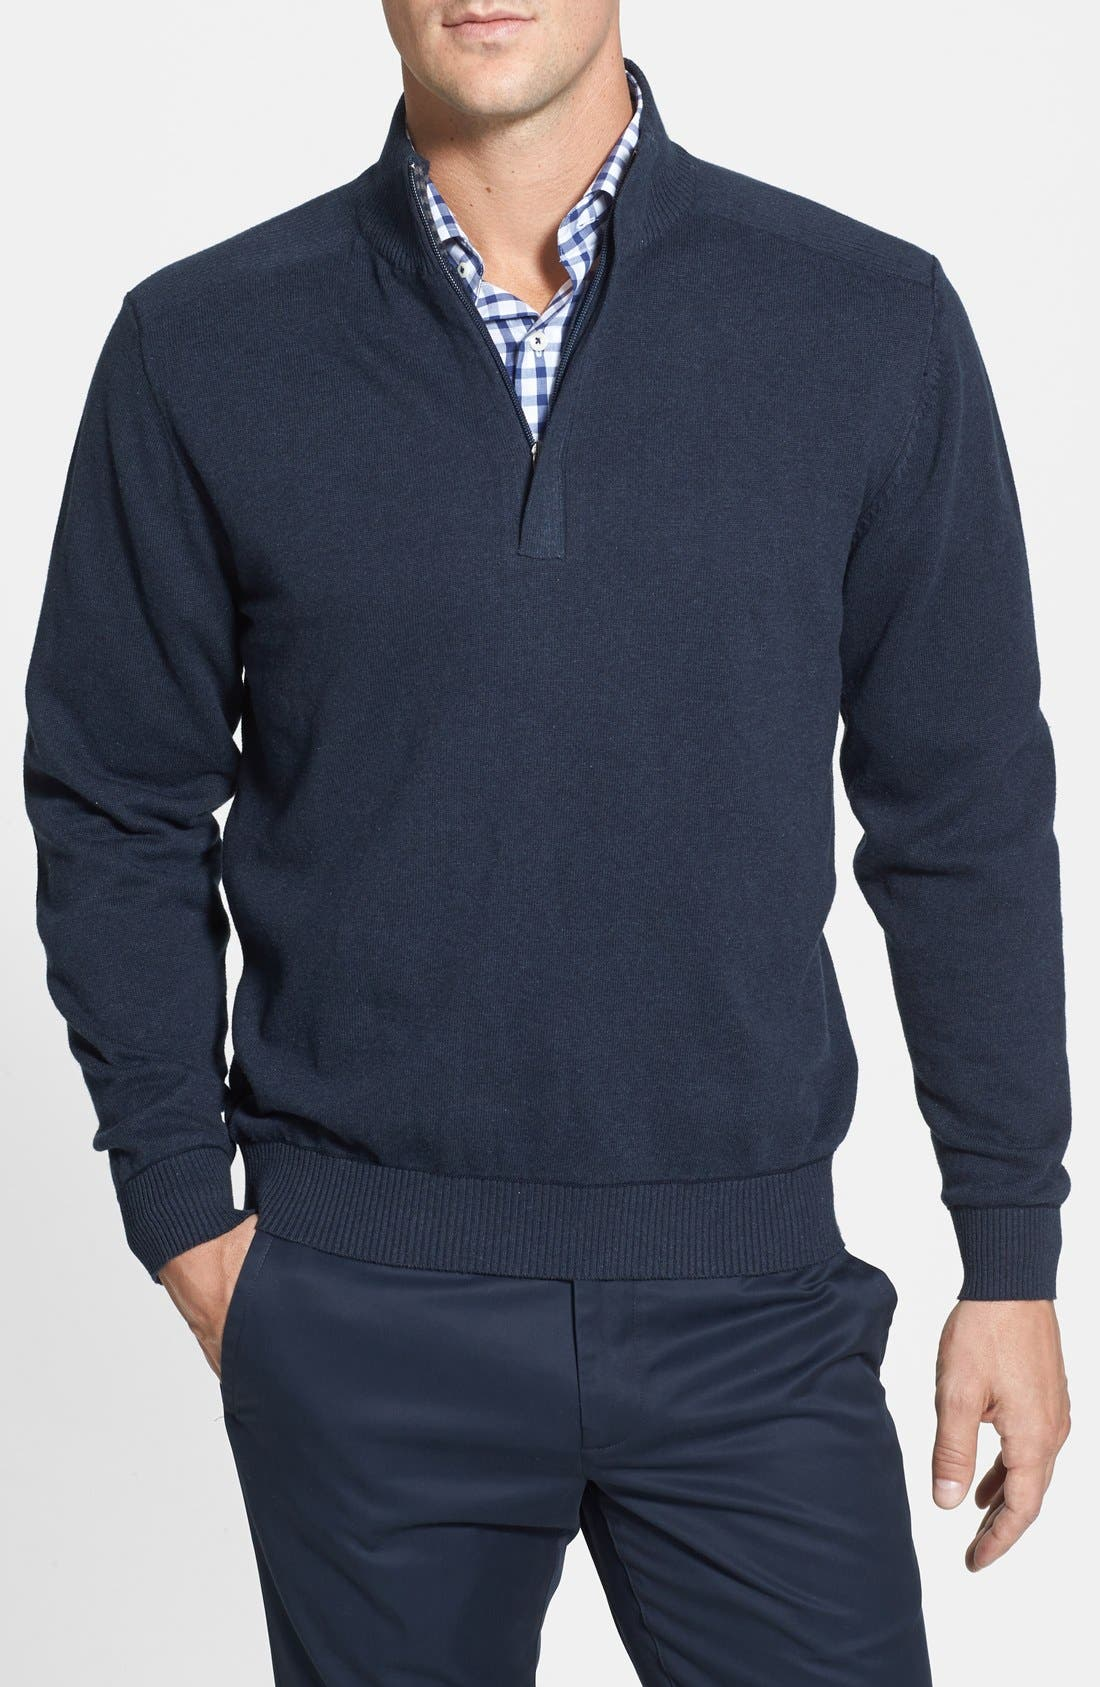 Alternate Image 1 Selected - Cutter & Buck Broadview Half Zip Sweater